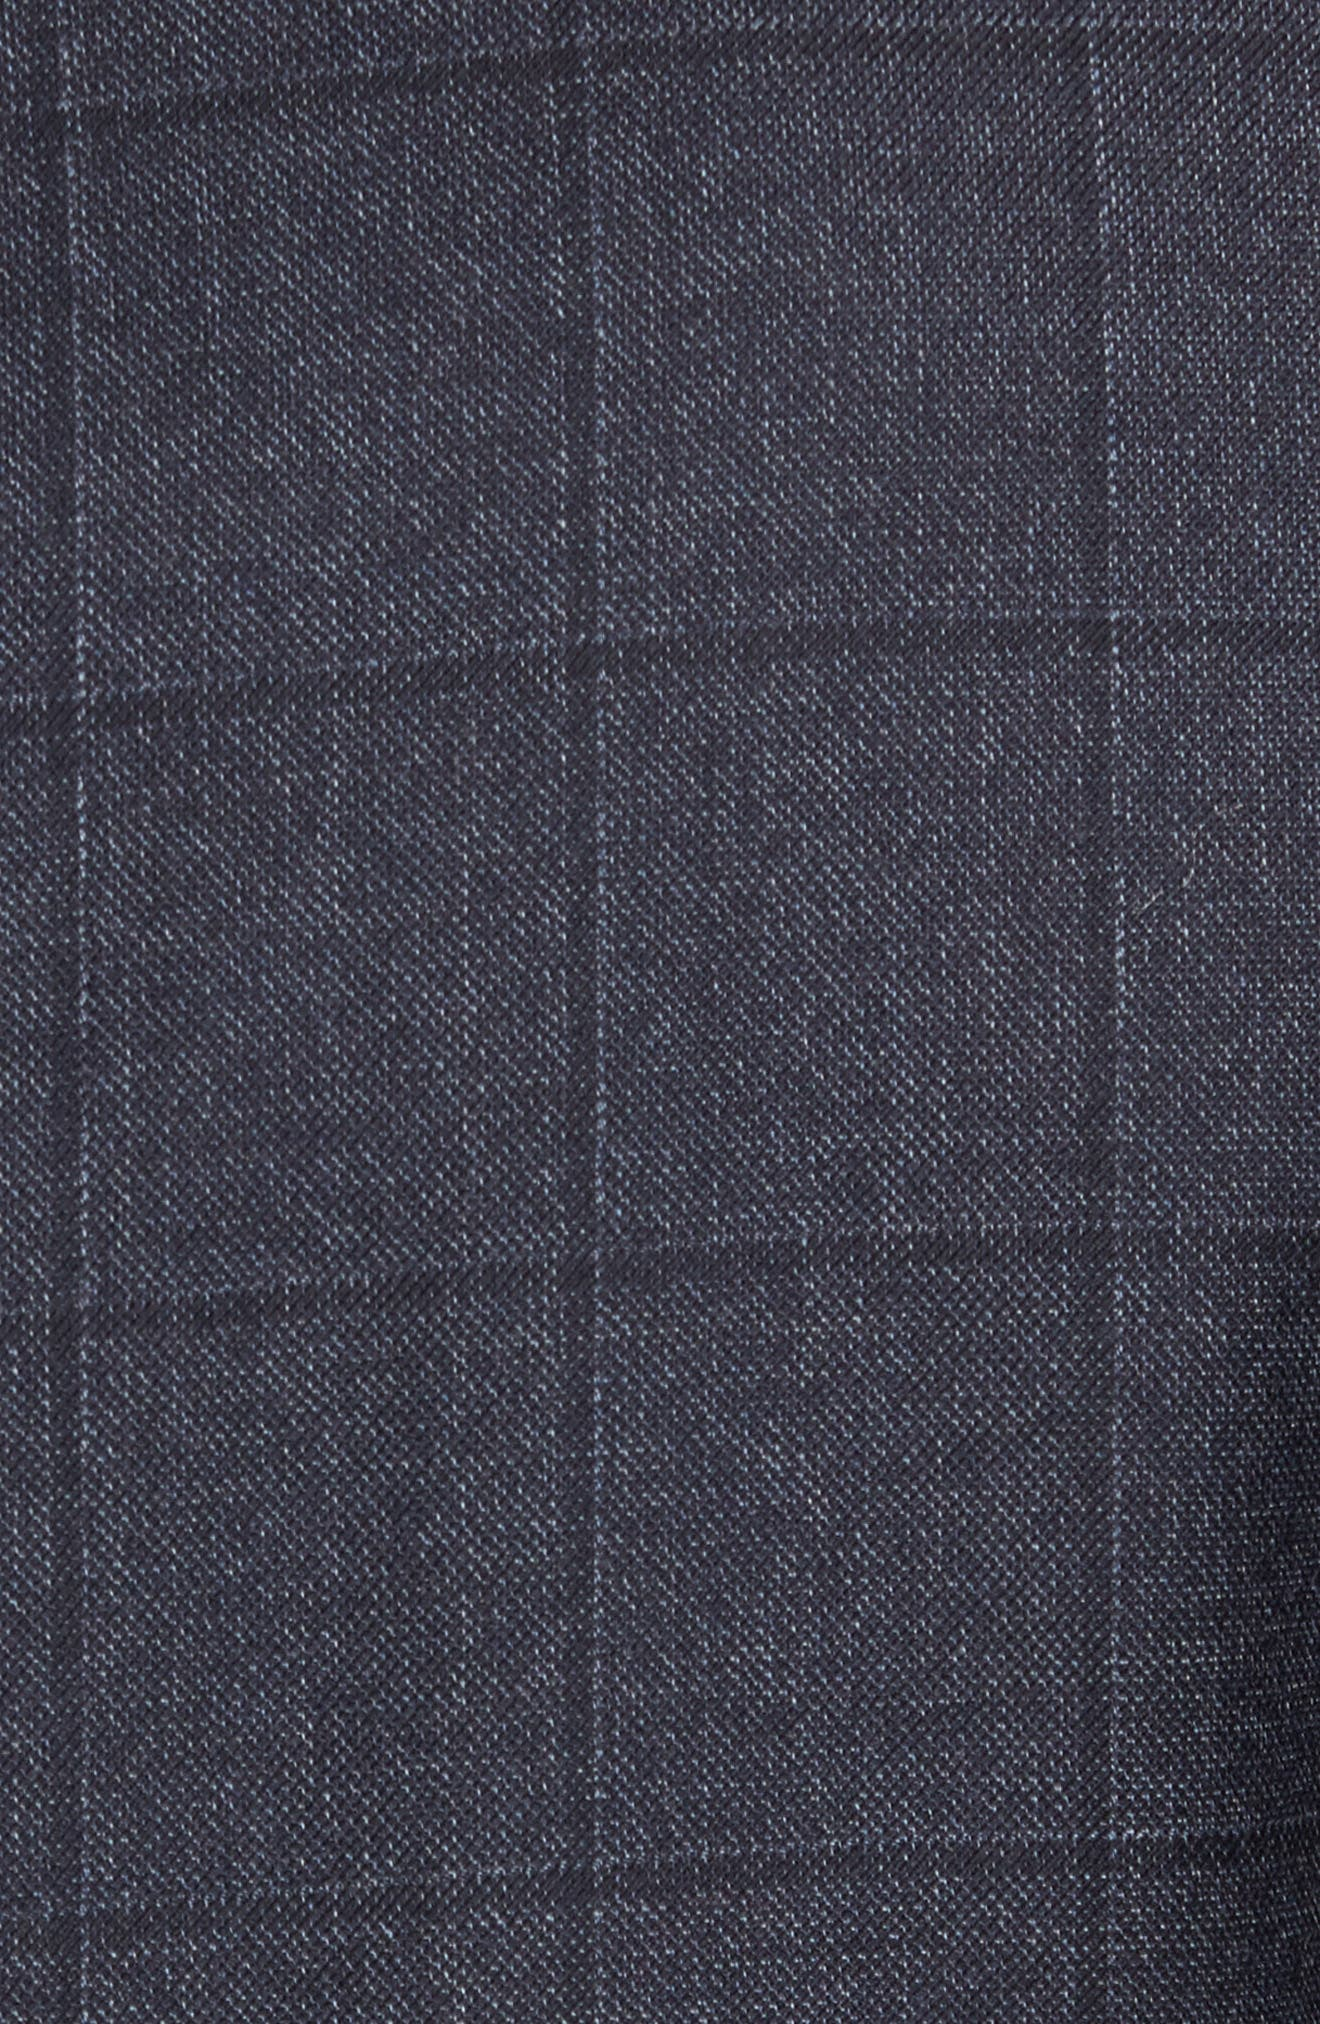 Trim Fit Windowpane Wool Sport Coat,                             Alternate thumbnail 5, color,                             Mid Blue